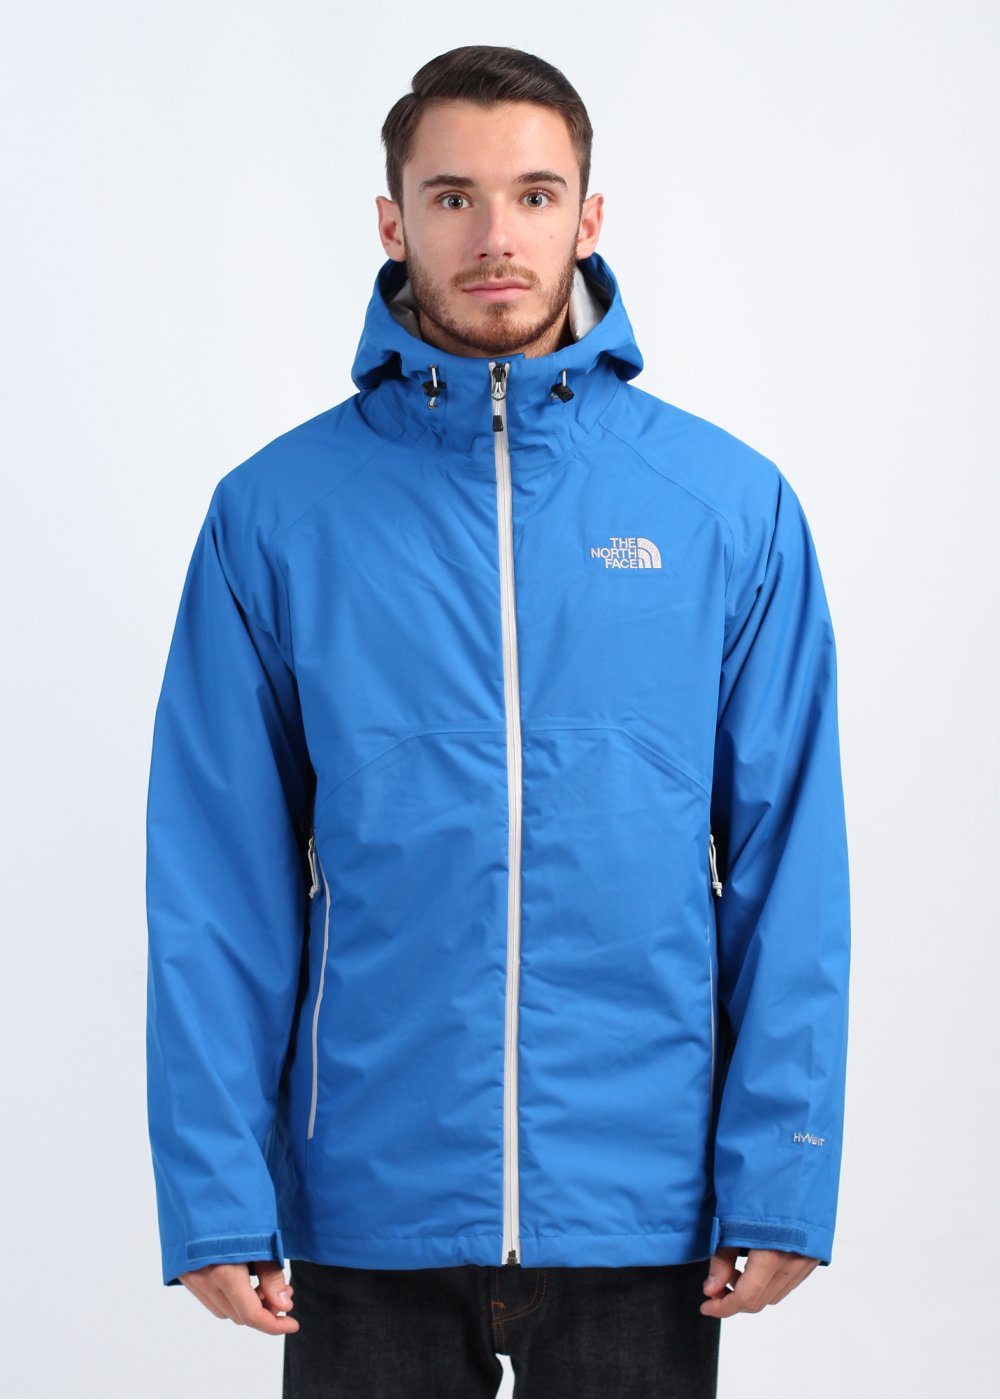 Triads Mens C1 Outerwear C30 Jackets C207 The North Face Stratos Jacket Blue P64778 North Face Jacket France